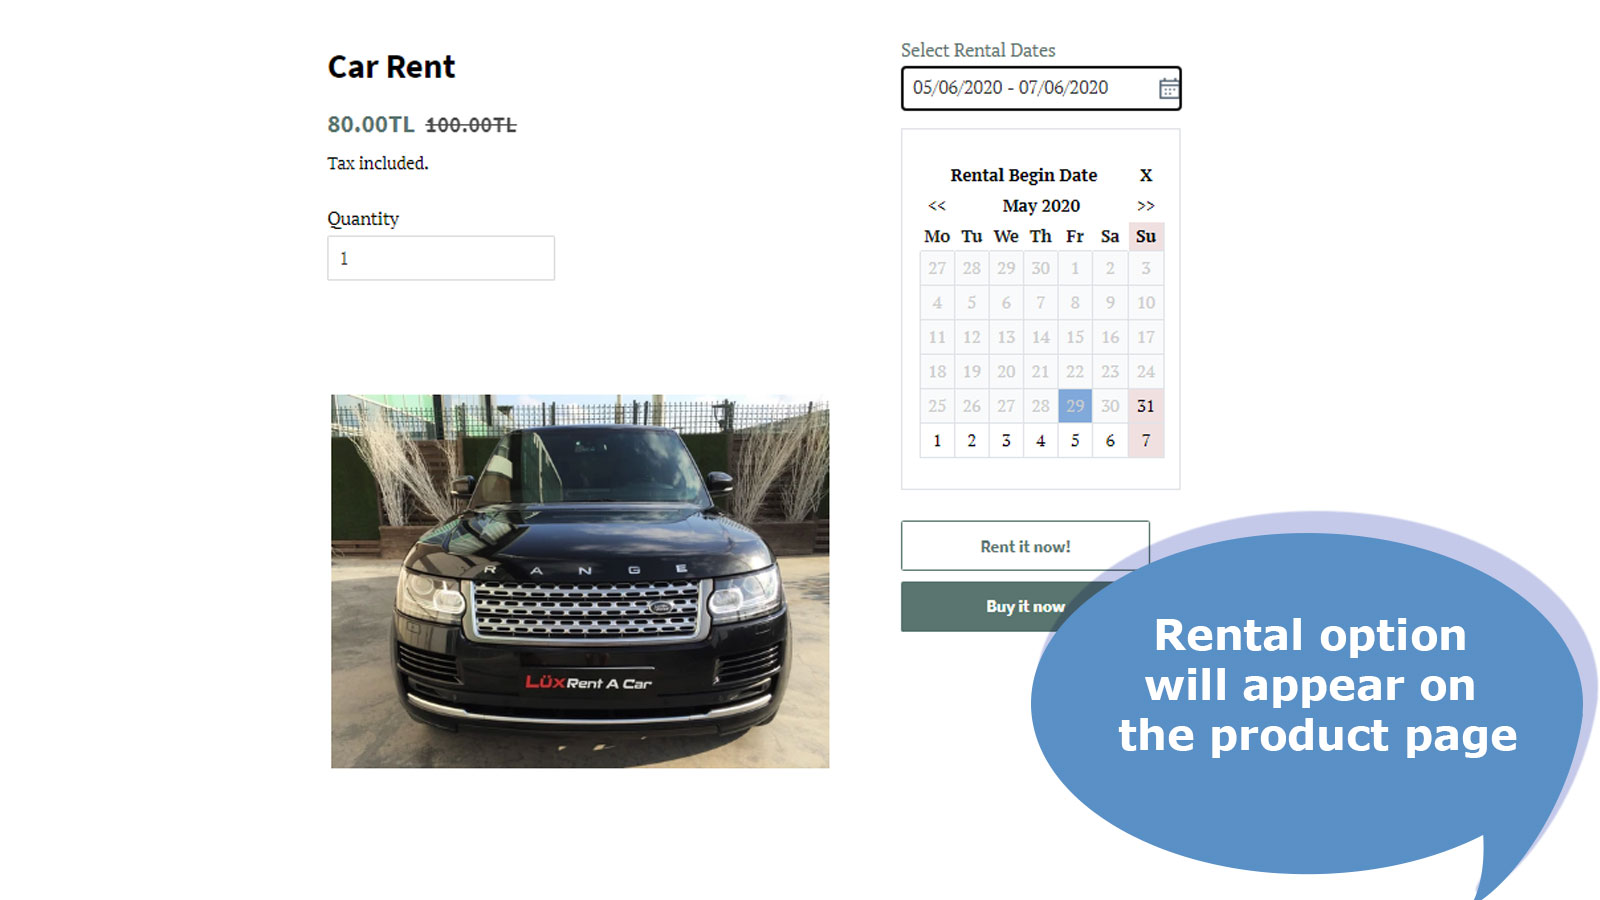 Rental dates option will appear on the product page